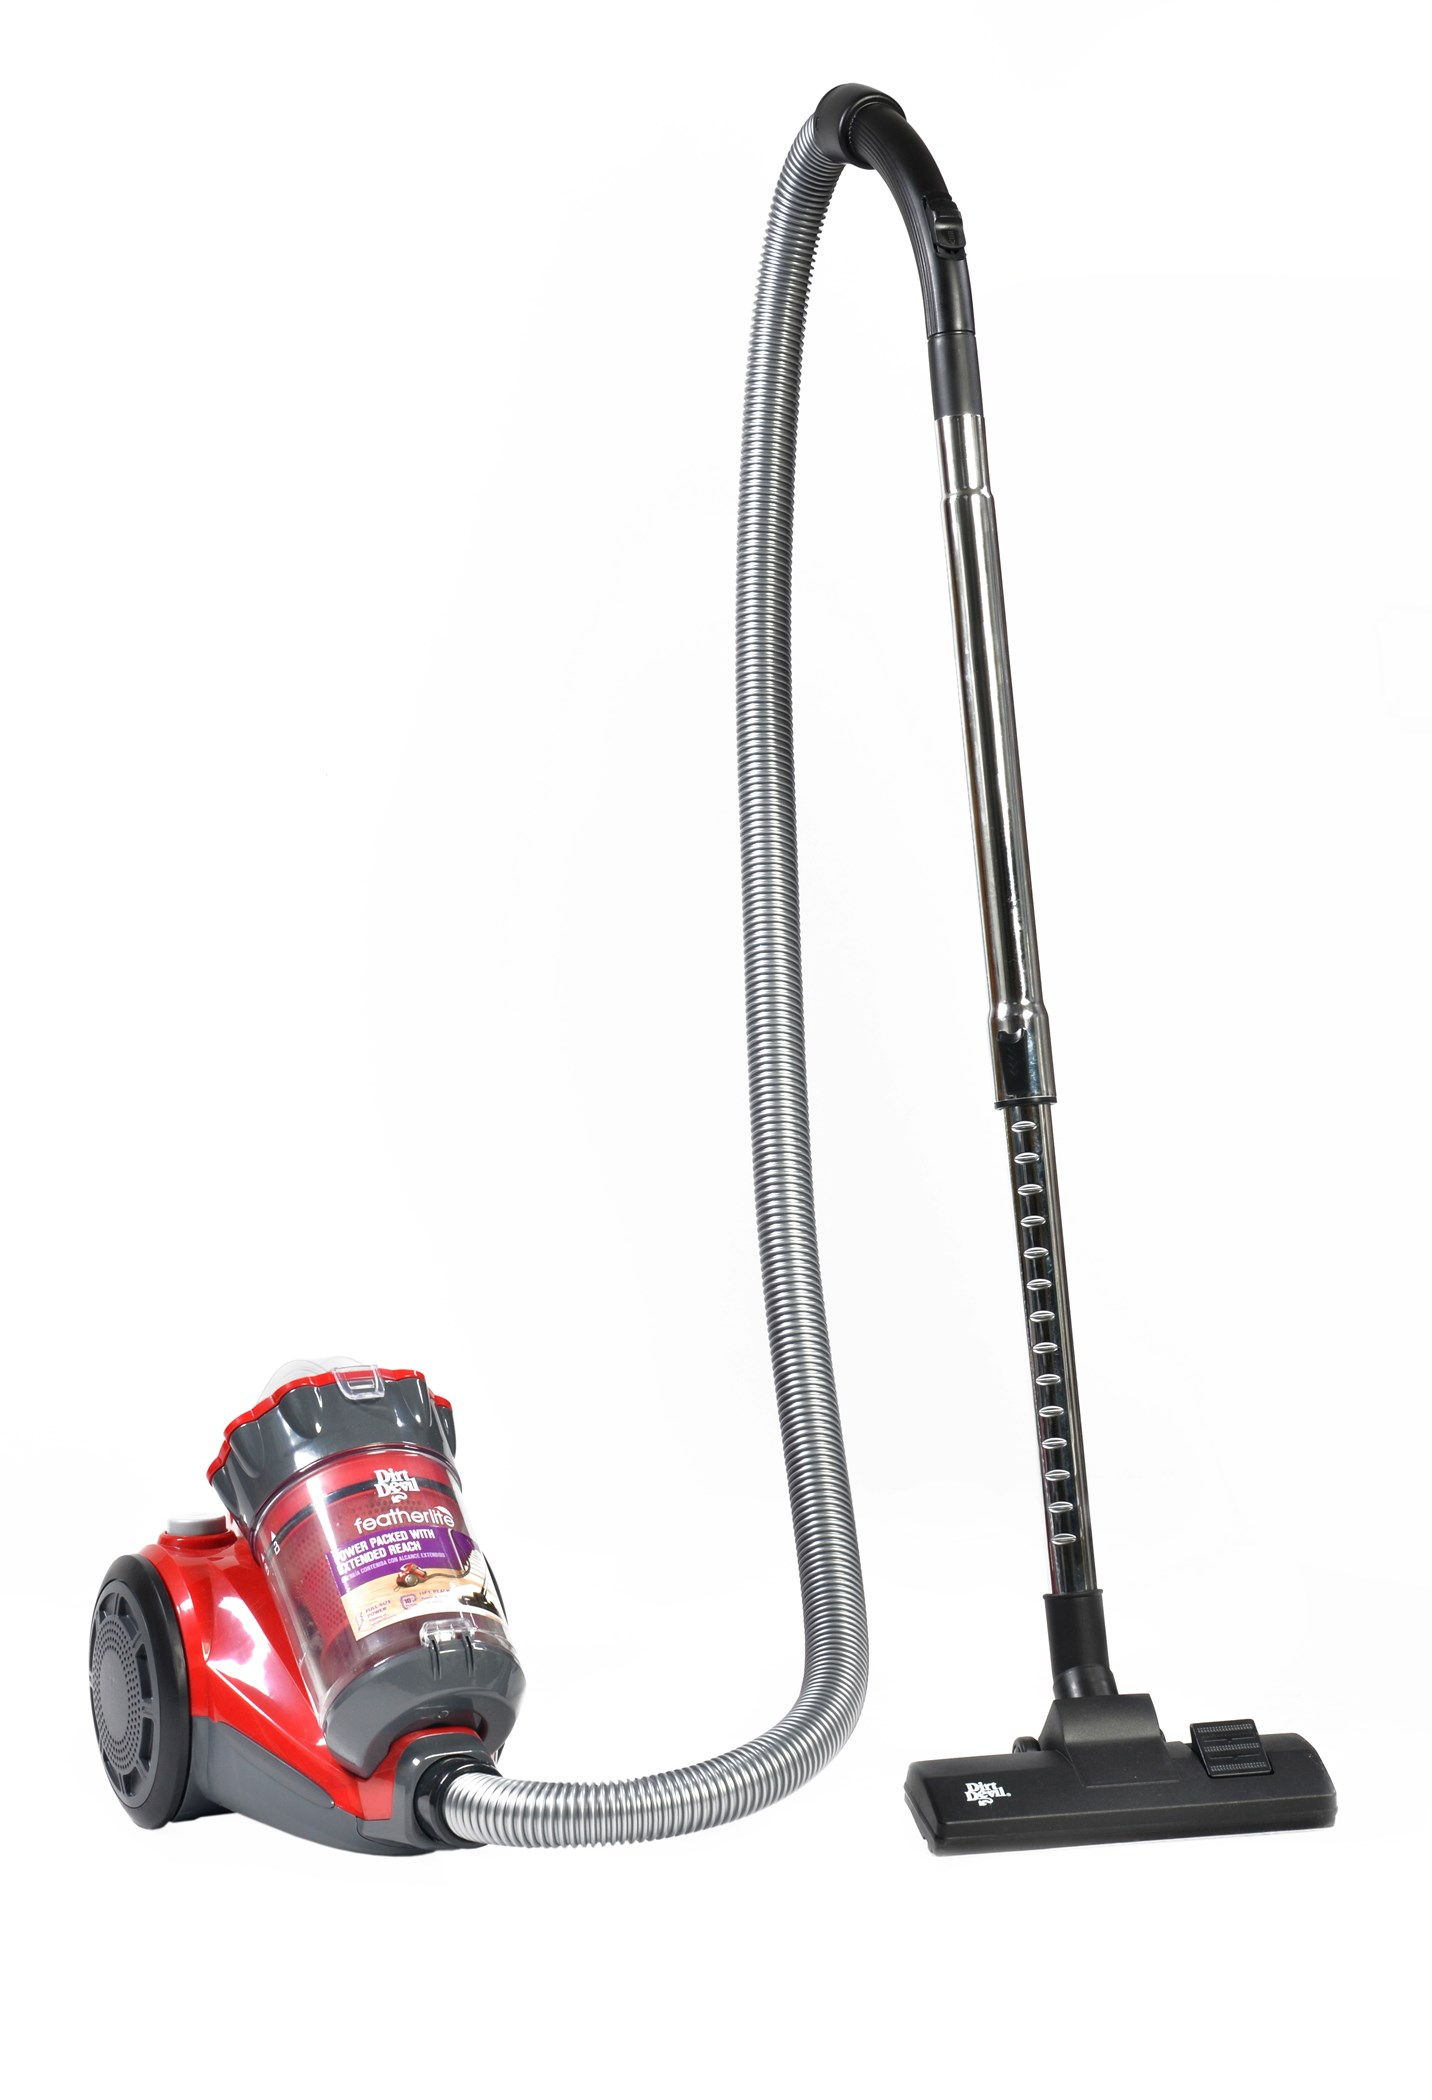 Dirt Devil Feather Lite Lightweight Cyclonic Canister Vacuum 10 Ct Bissell Carpet Cleaner Parts Diagram Further Breeze Bagless